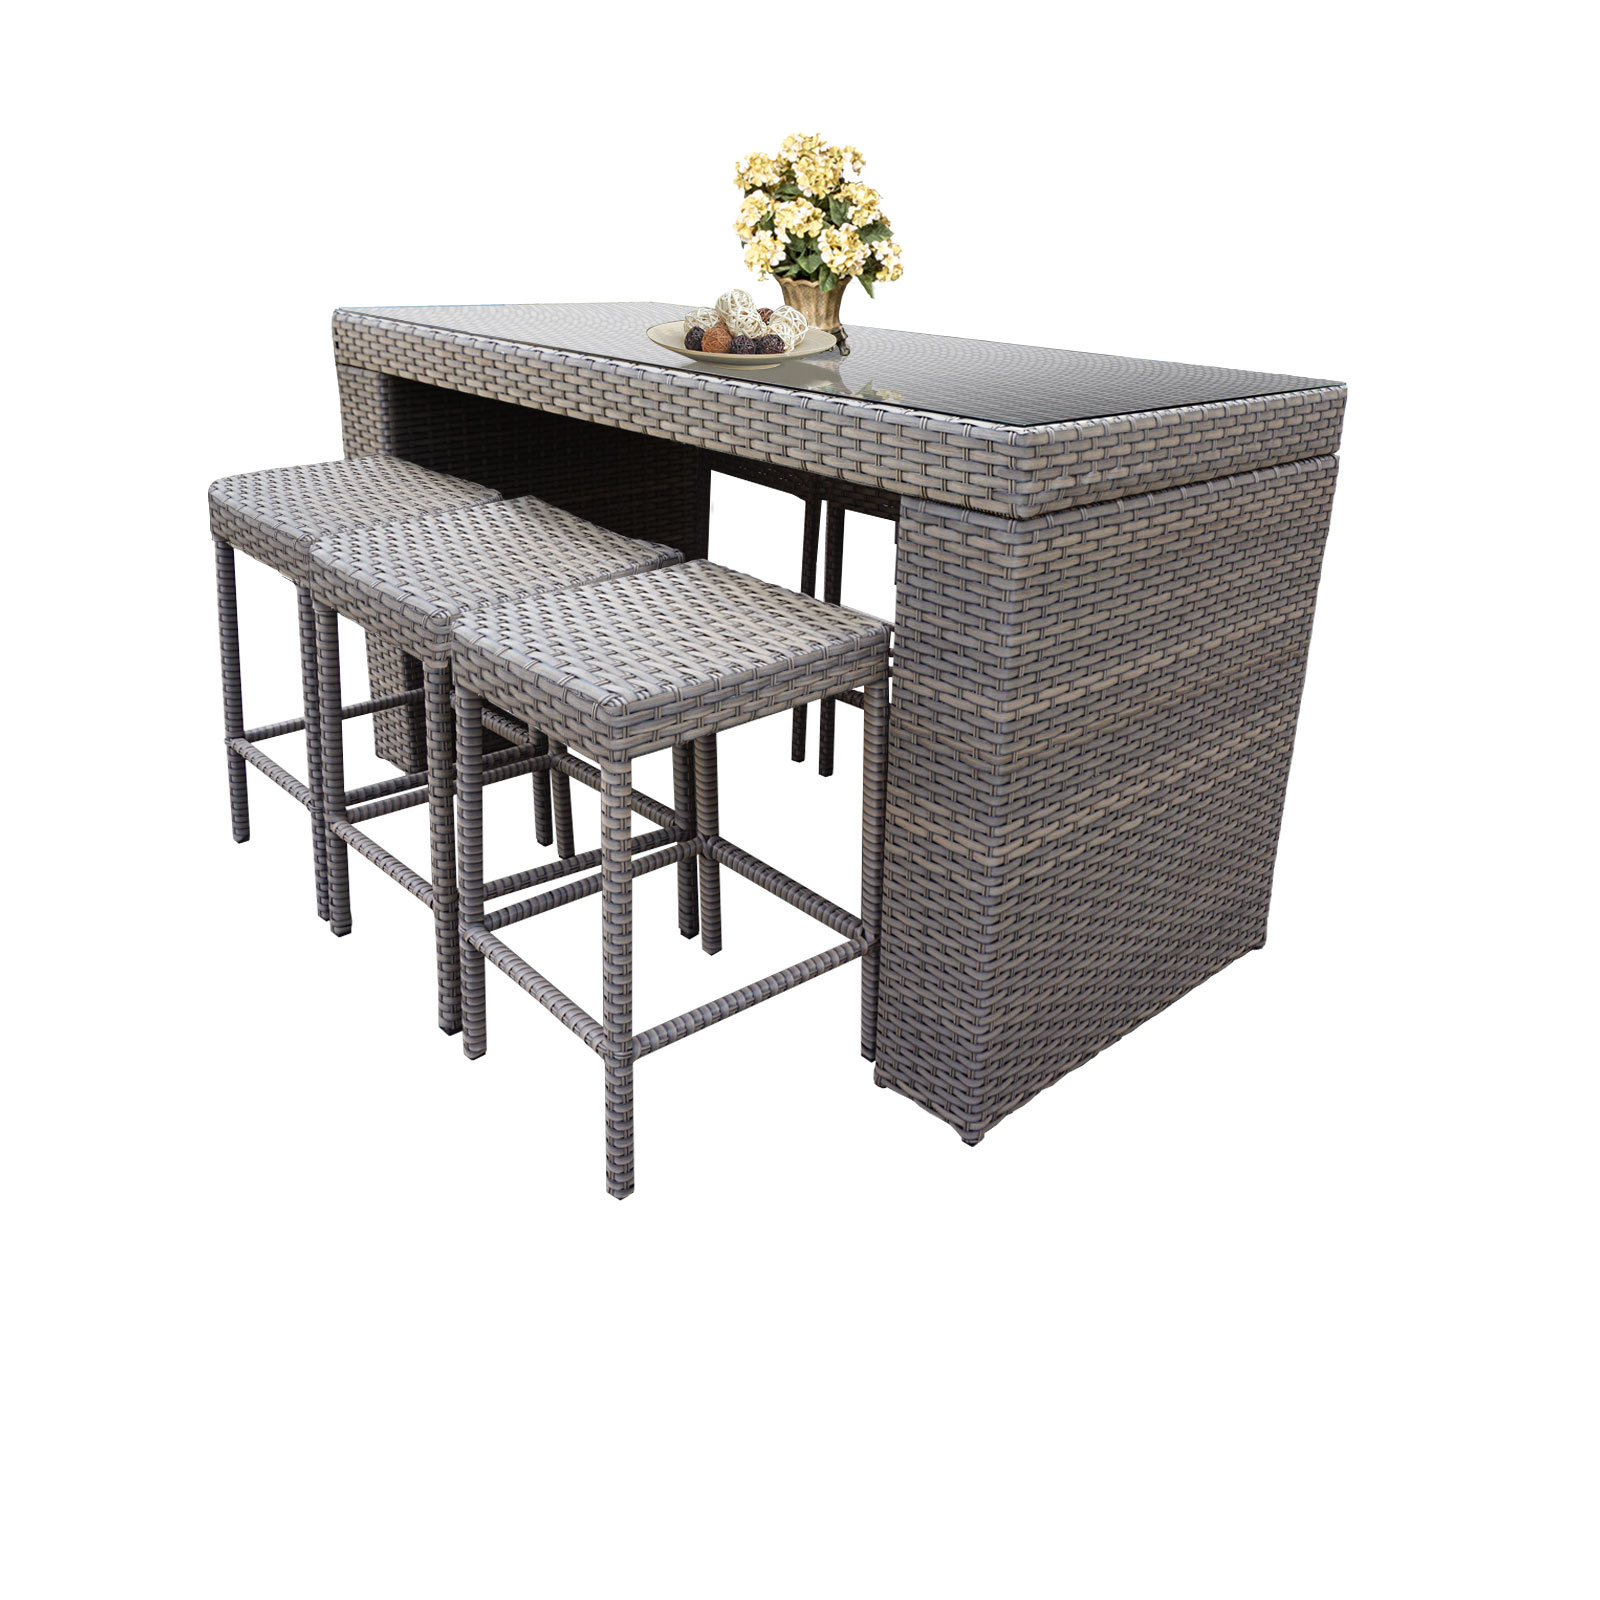 Bar Table Set With Backless Barstools 7 Piece Outdoor Wicker Patio Furniture